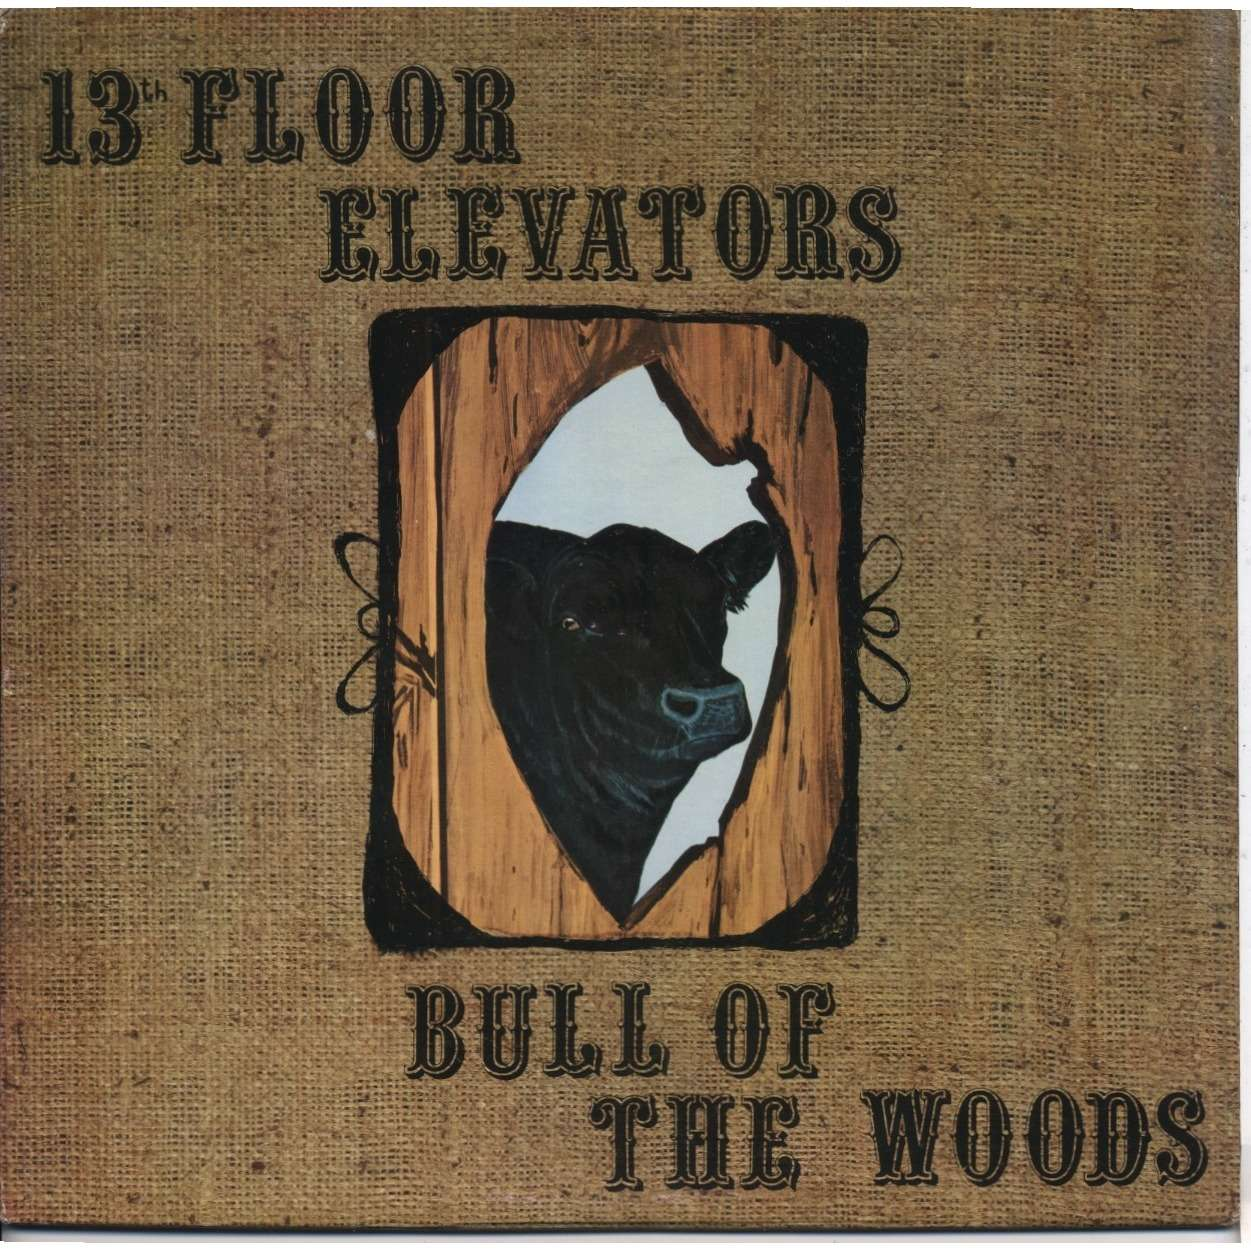 13th floor elevators bull of the woods lp for sale on